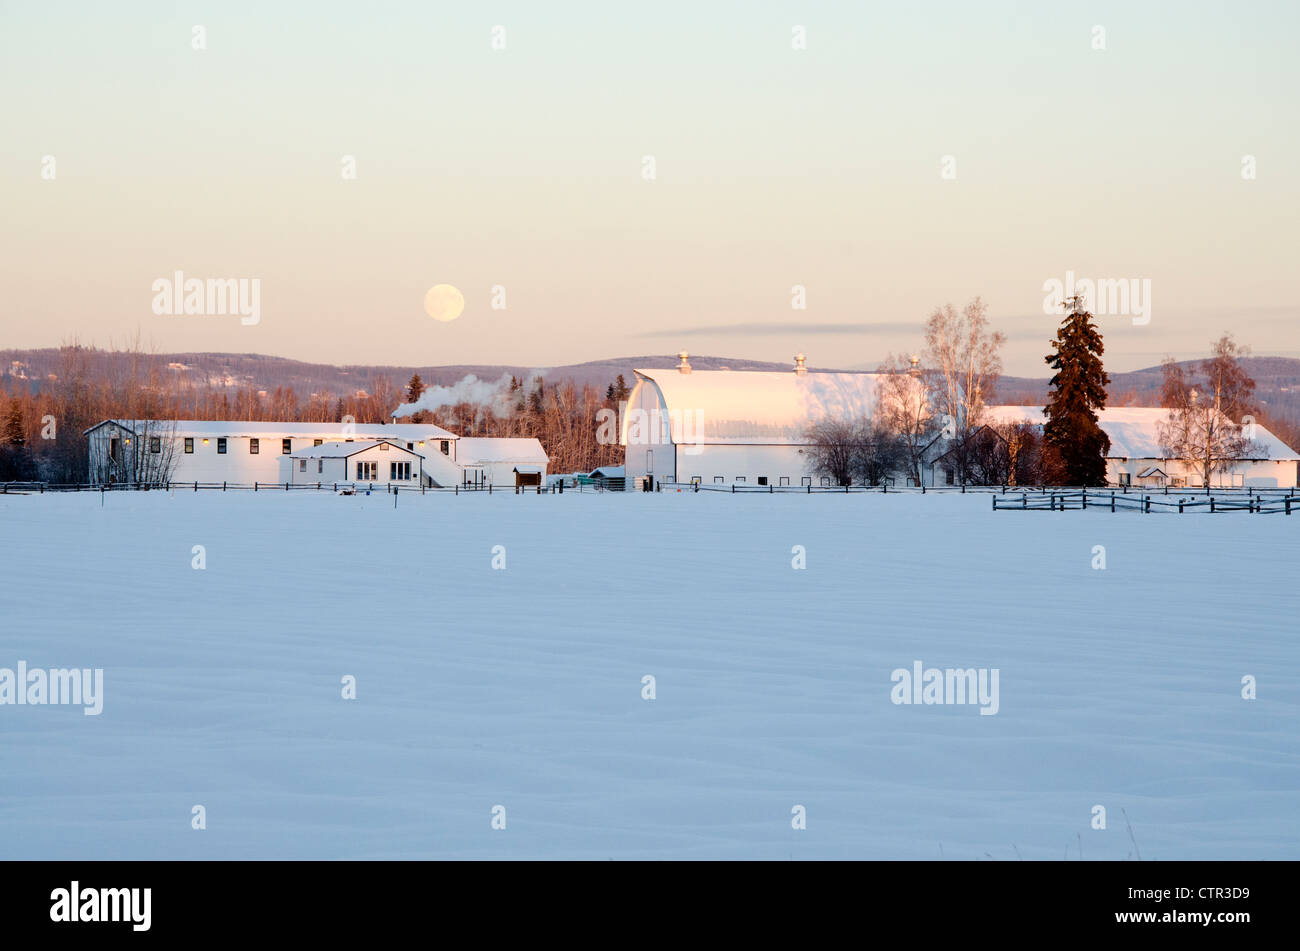 Full moon rises over snowcovered historic buildings former dairy farm Creamer's Field Migratory Waterfowl Refuge Fairbanks Stock Photo